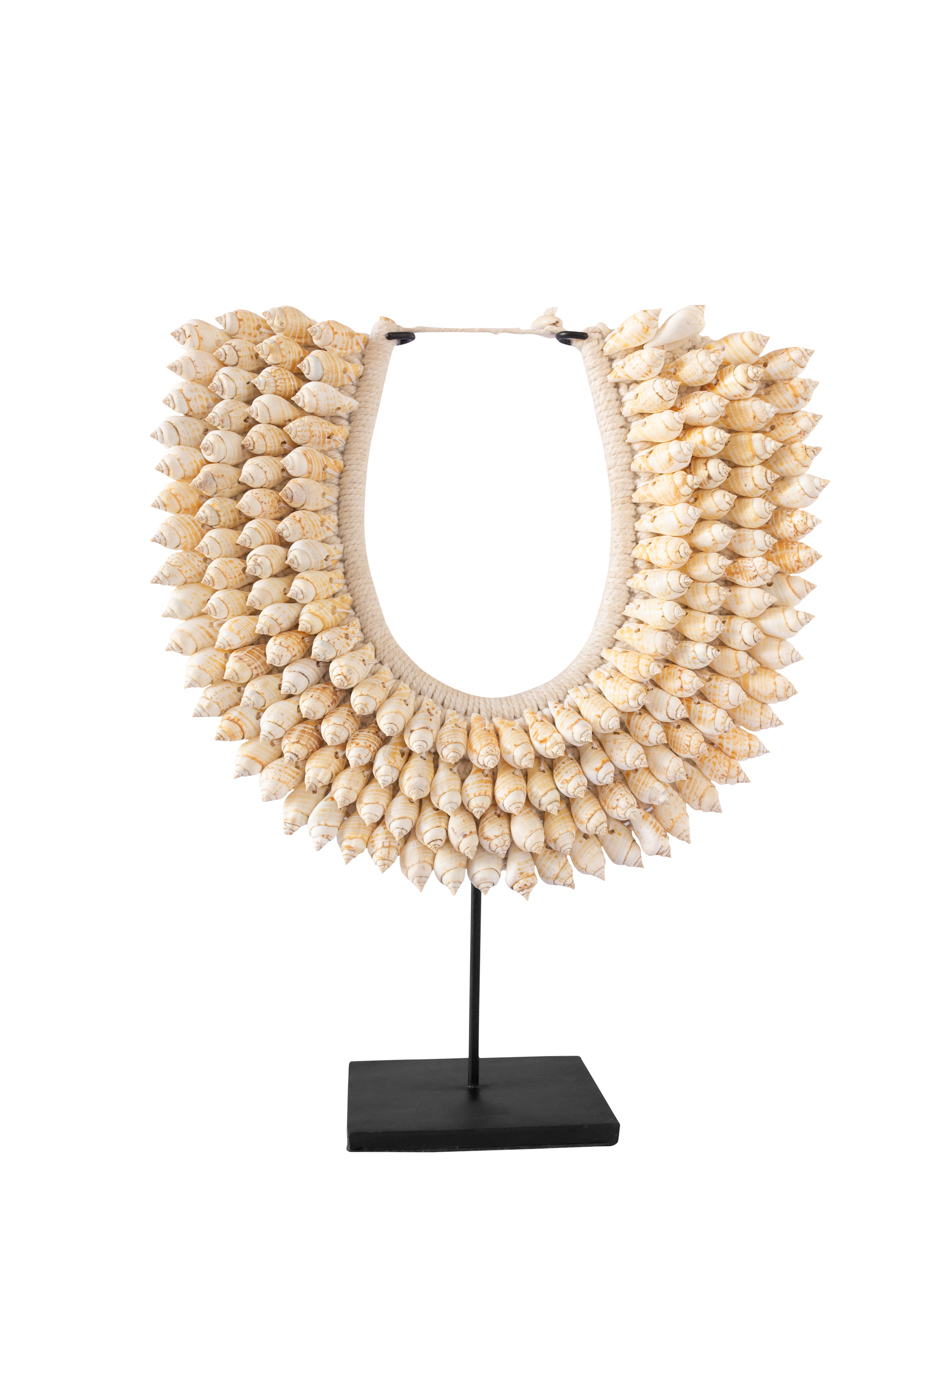 Decorative necklace with snail shells